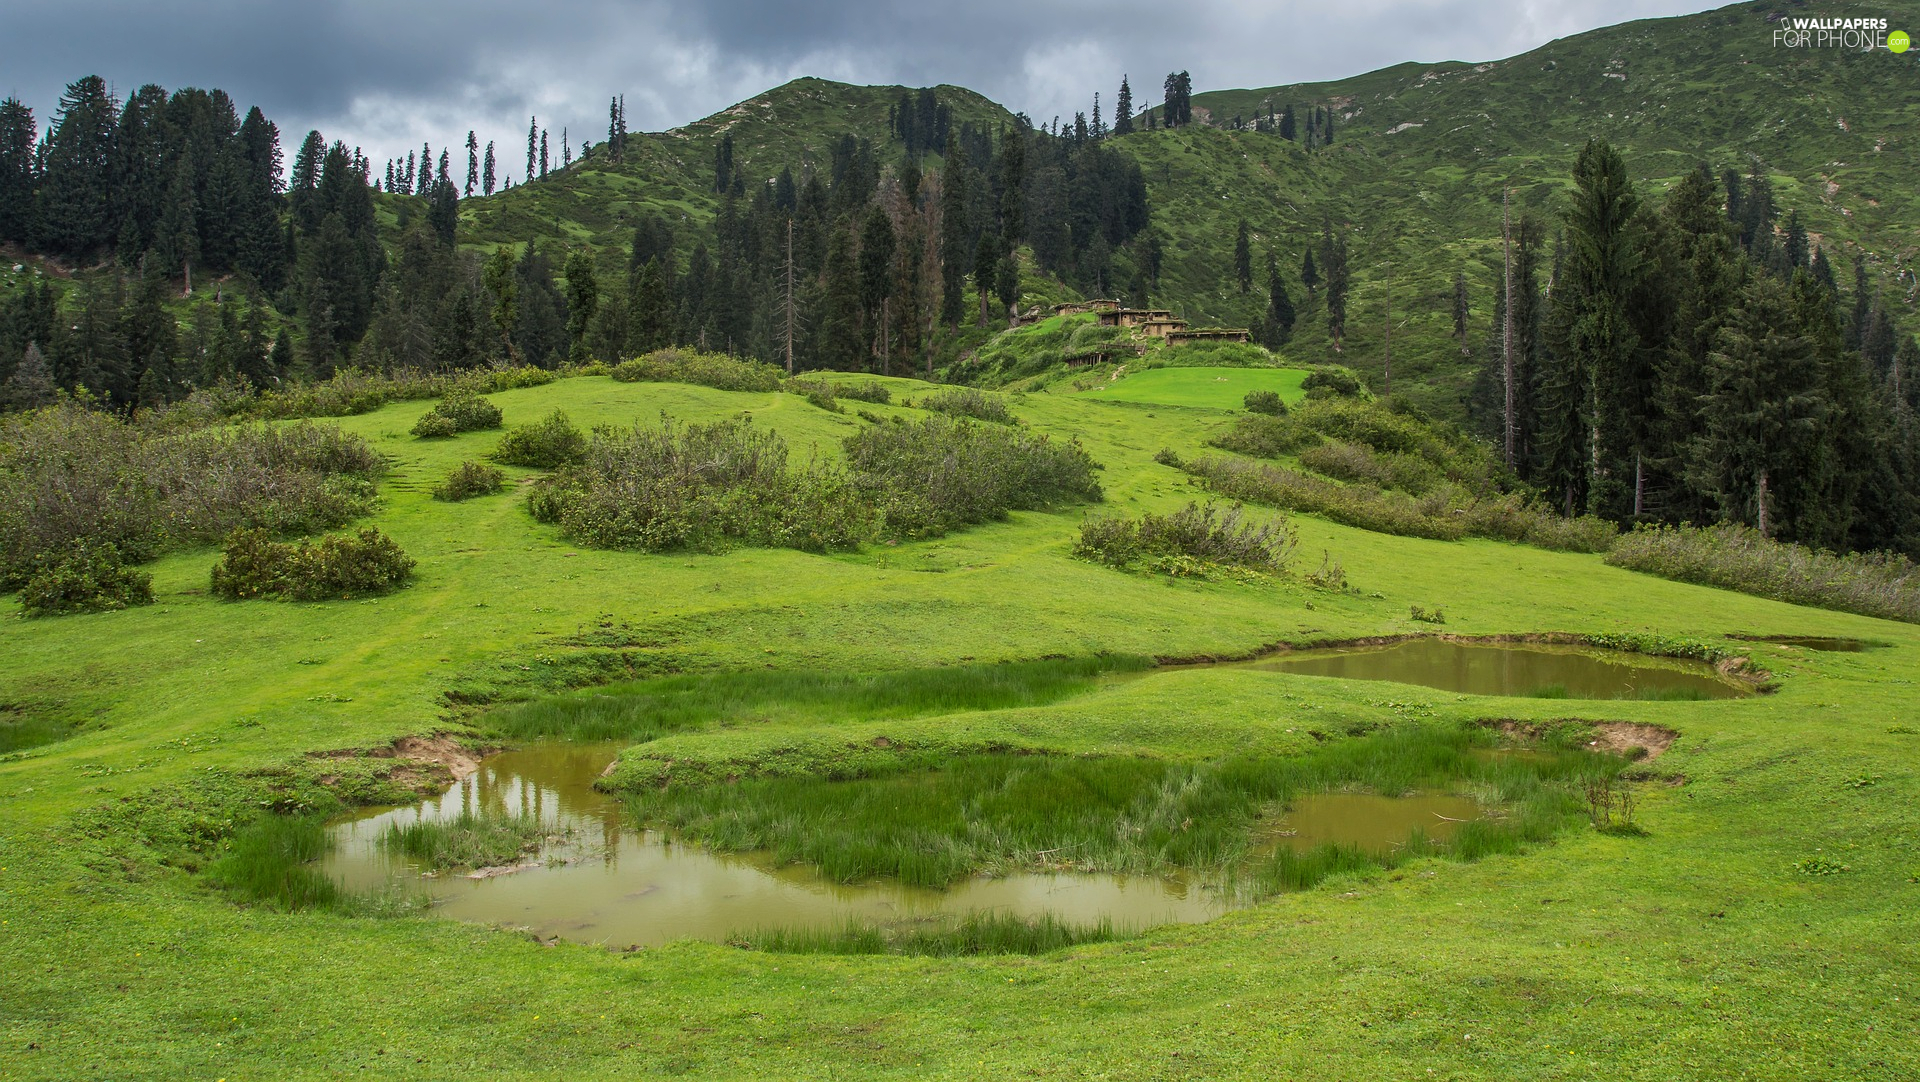 trees, Pond - car, green, car in the meadow, The Hills, viewes, VEGETATION